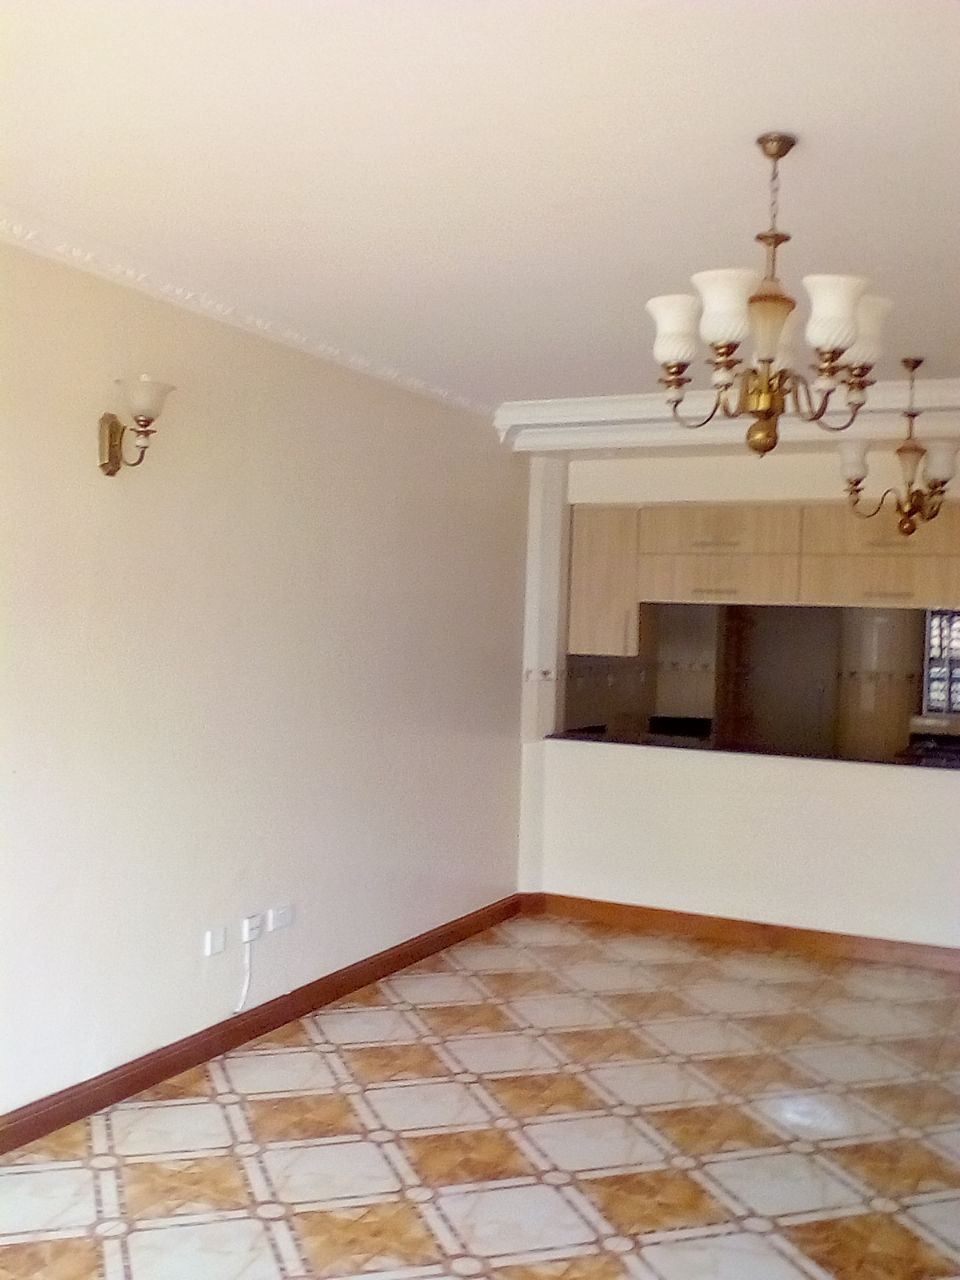 2 Bedrooms In Westlands, Nairobi (MD11256871) =24 hrs